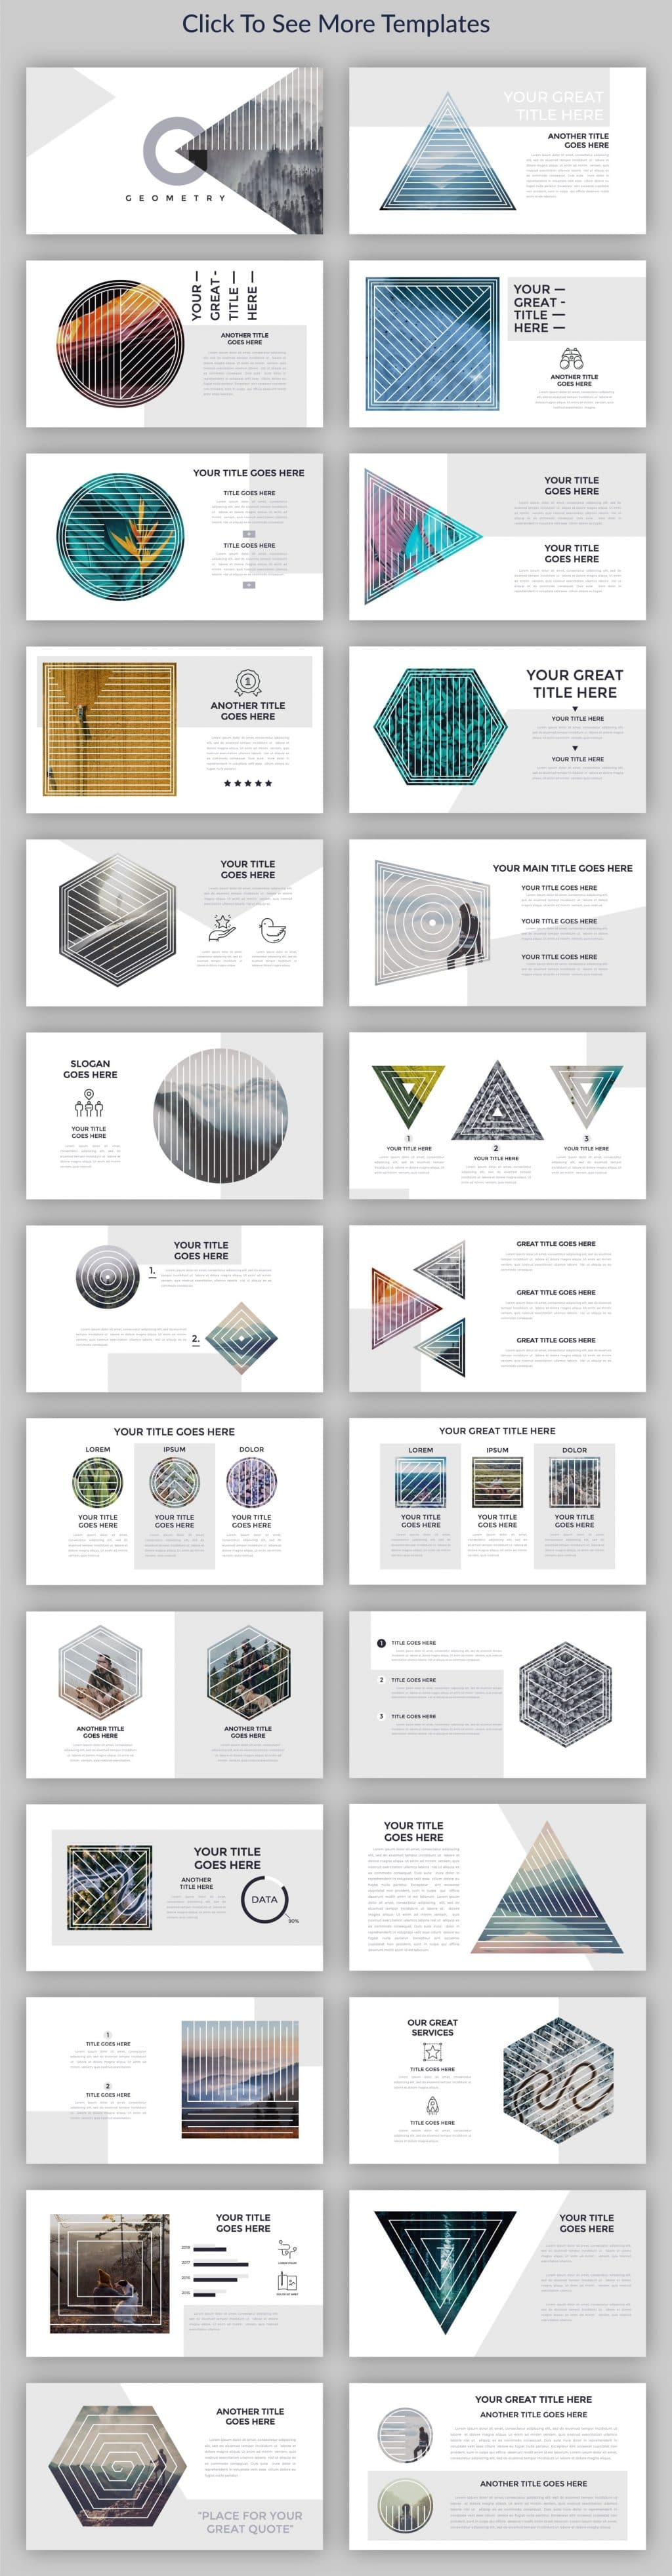 Minimal Geometry Powerpoint Template - $12 - cm preview1